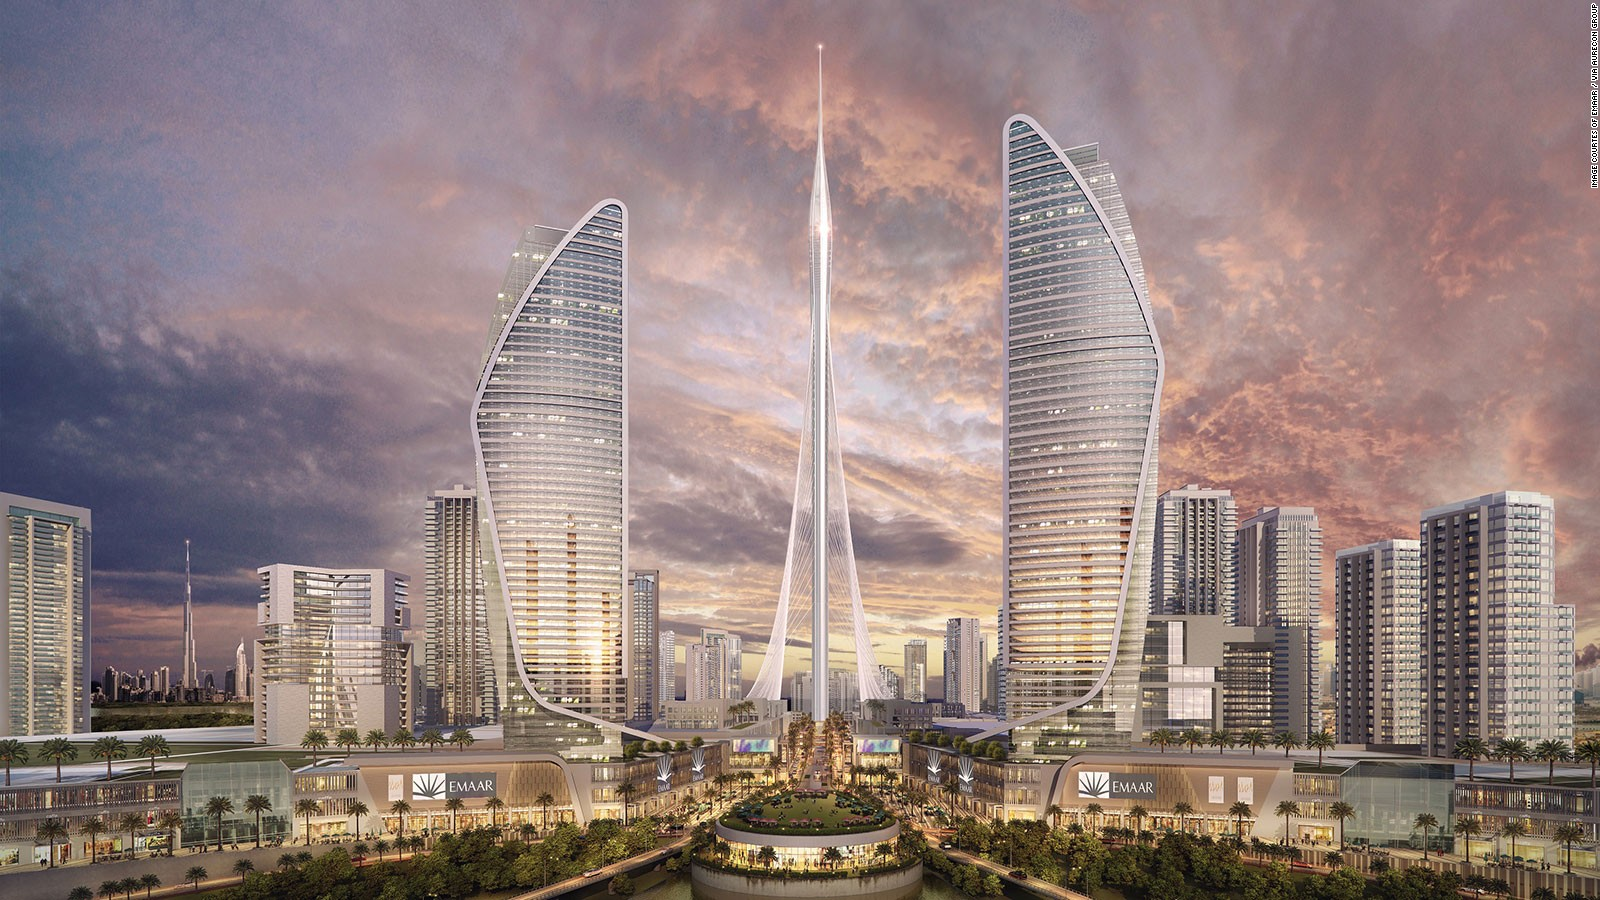 They Say Theyre Building Worlds Tallest >> The Tallest Building In The World Jeddah Tower Is Set To Open In